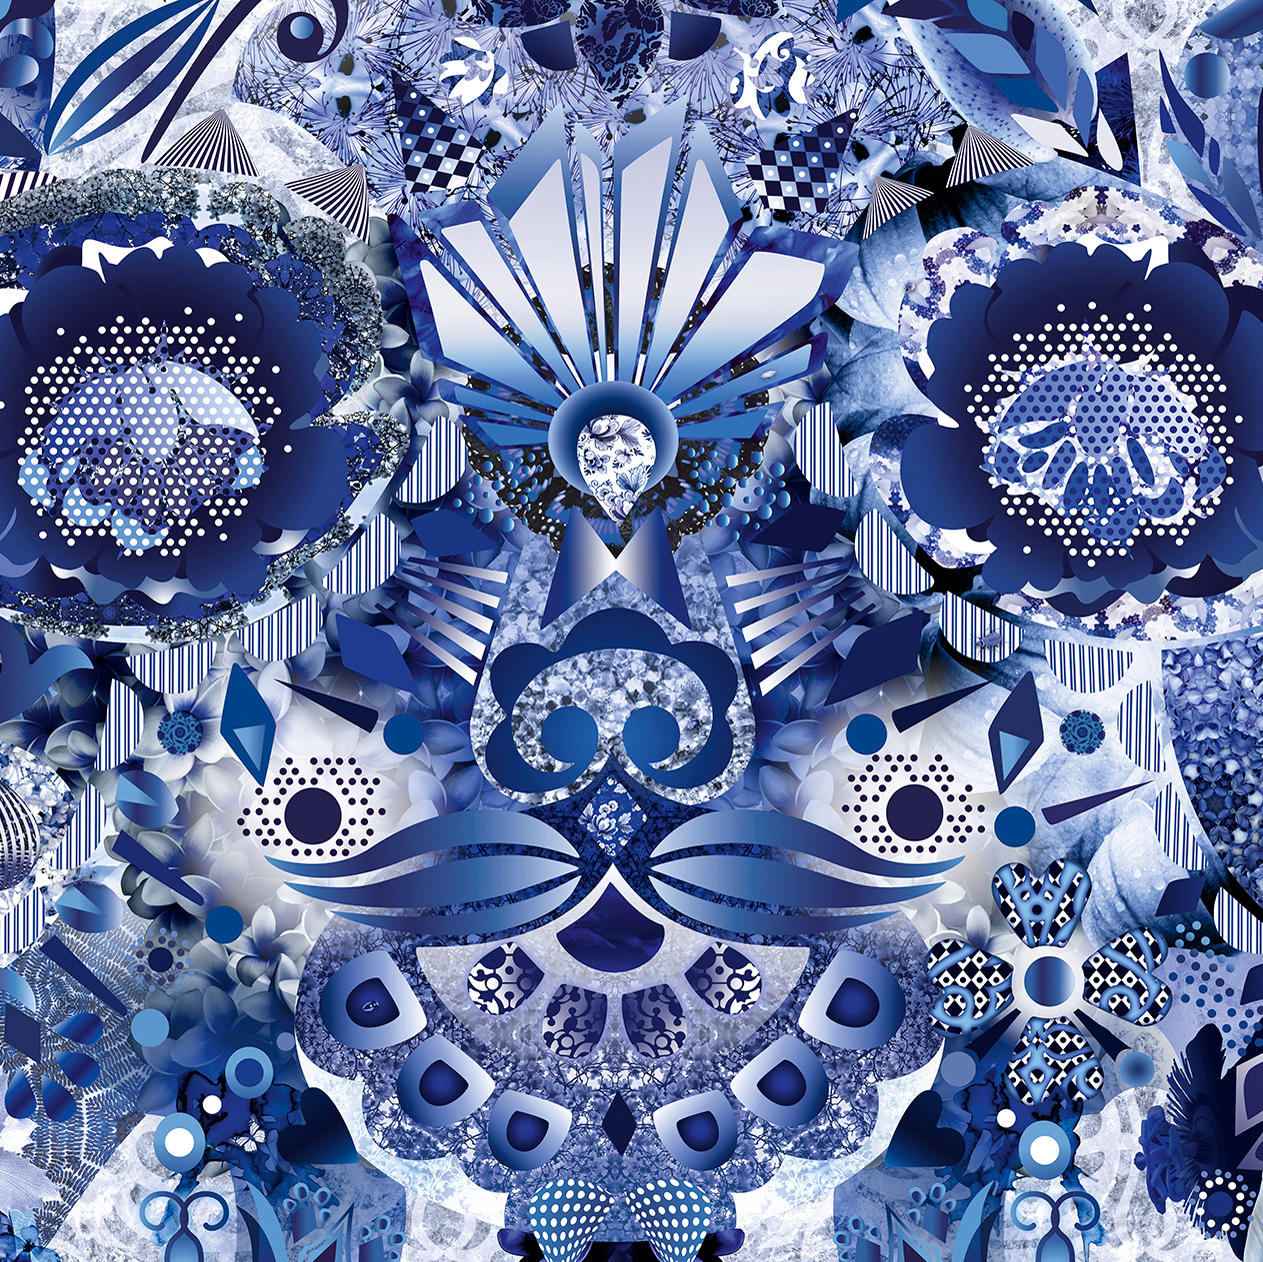 Delft Blue Broadloom Wall To Wall Carpets From Moooi